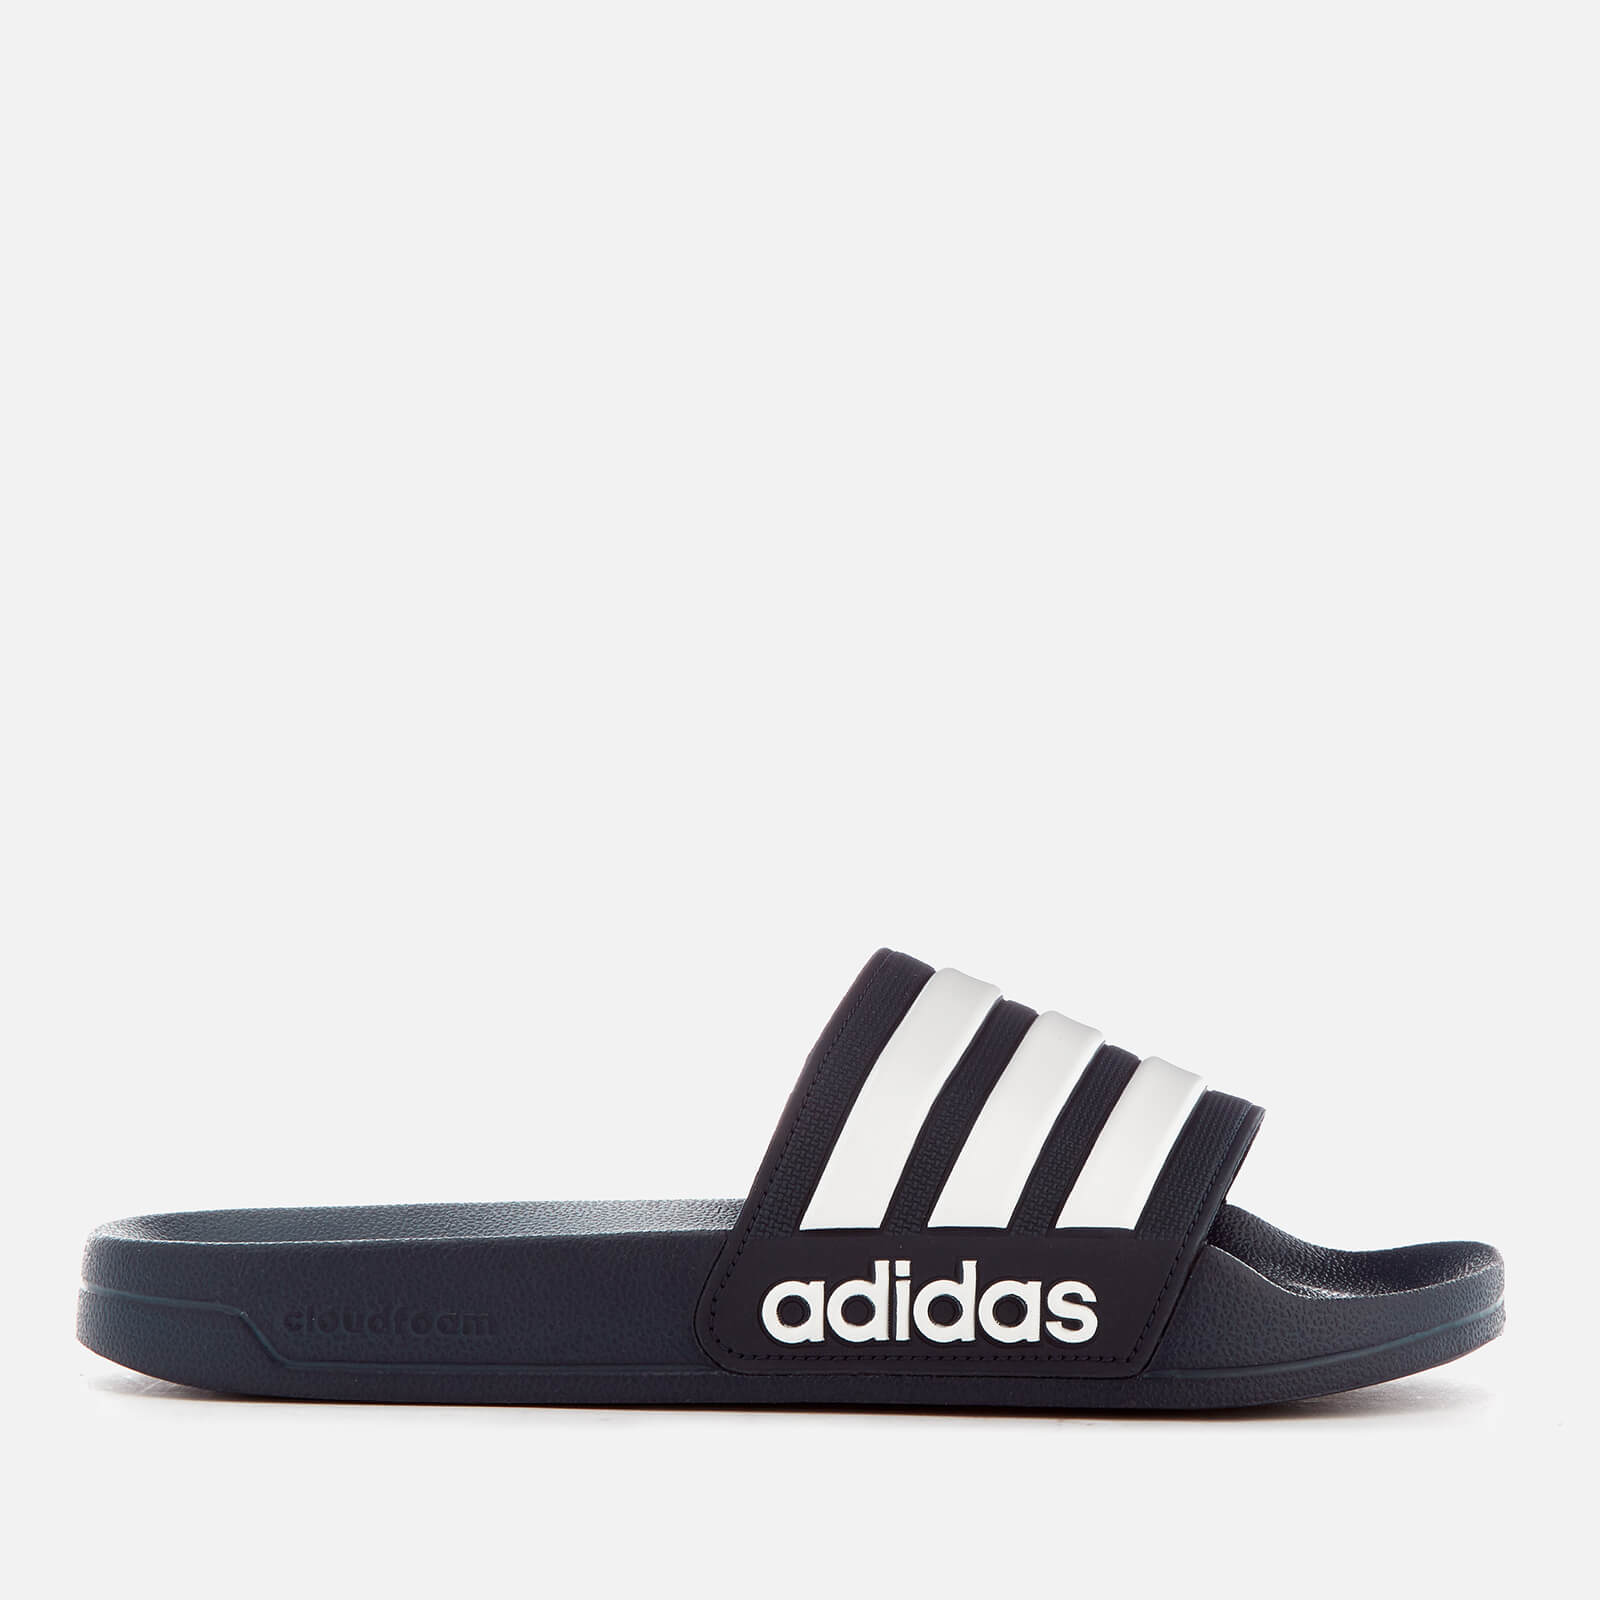 209c8449a36a adidas Men s Adilette Shower Slide Sandals - Collegiate Navy Sports    Leisure